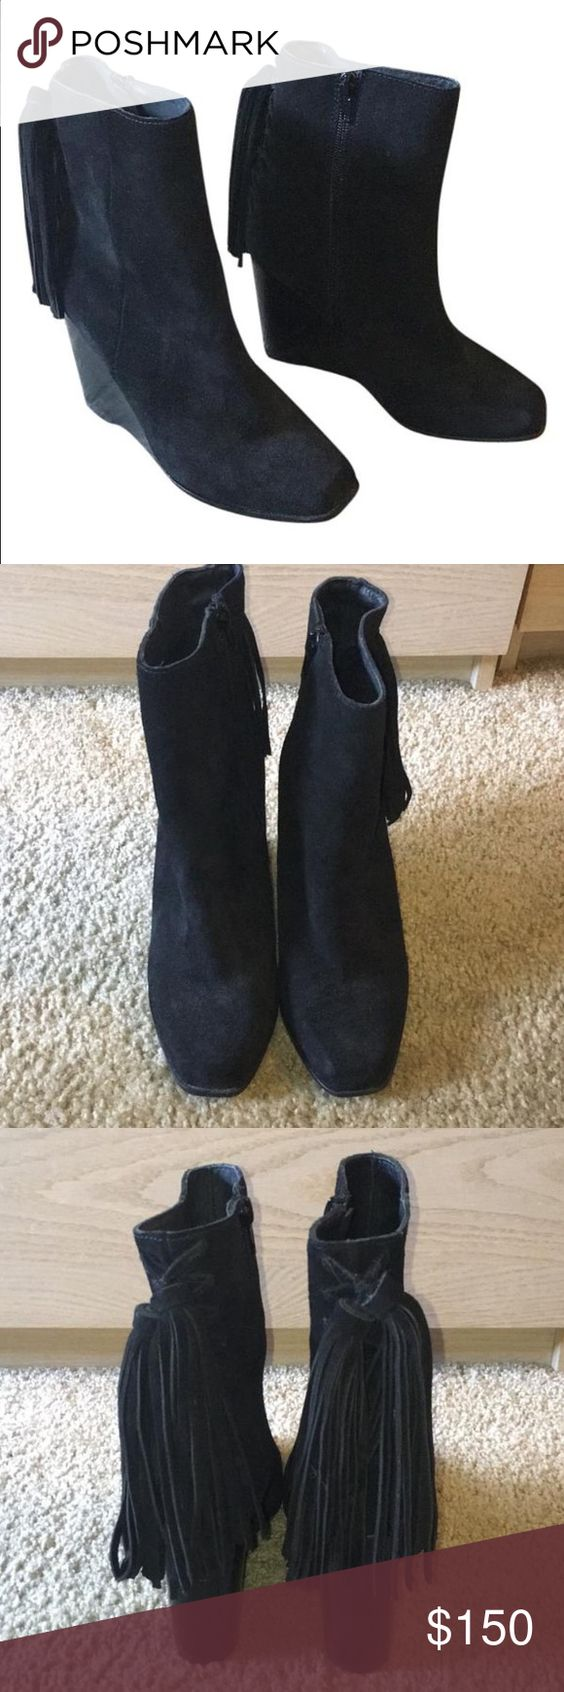 NWT Jeffrey Campbell tassel booties 7.5 NWT. Gorgeous suede ankle booties with these on back by Jeffrey Campbell. Purchased for $210. Jeffrey Campbell Shoes Ankle Boots & Booties